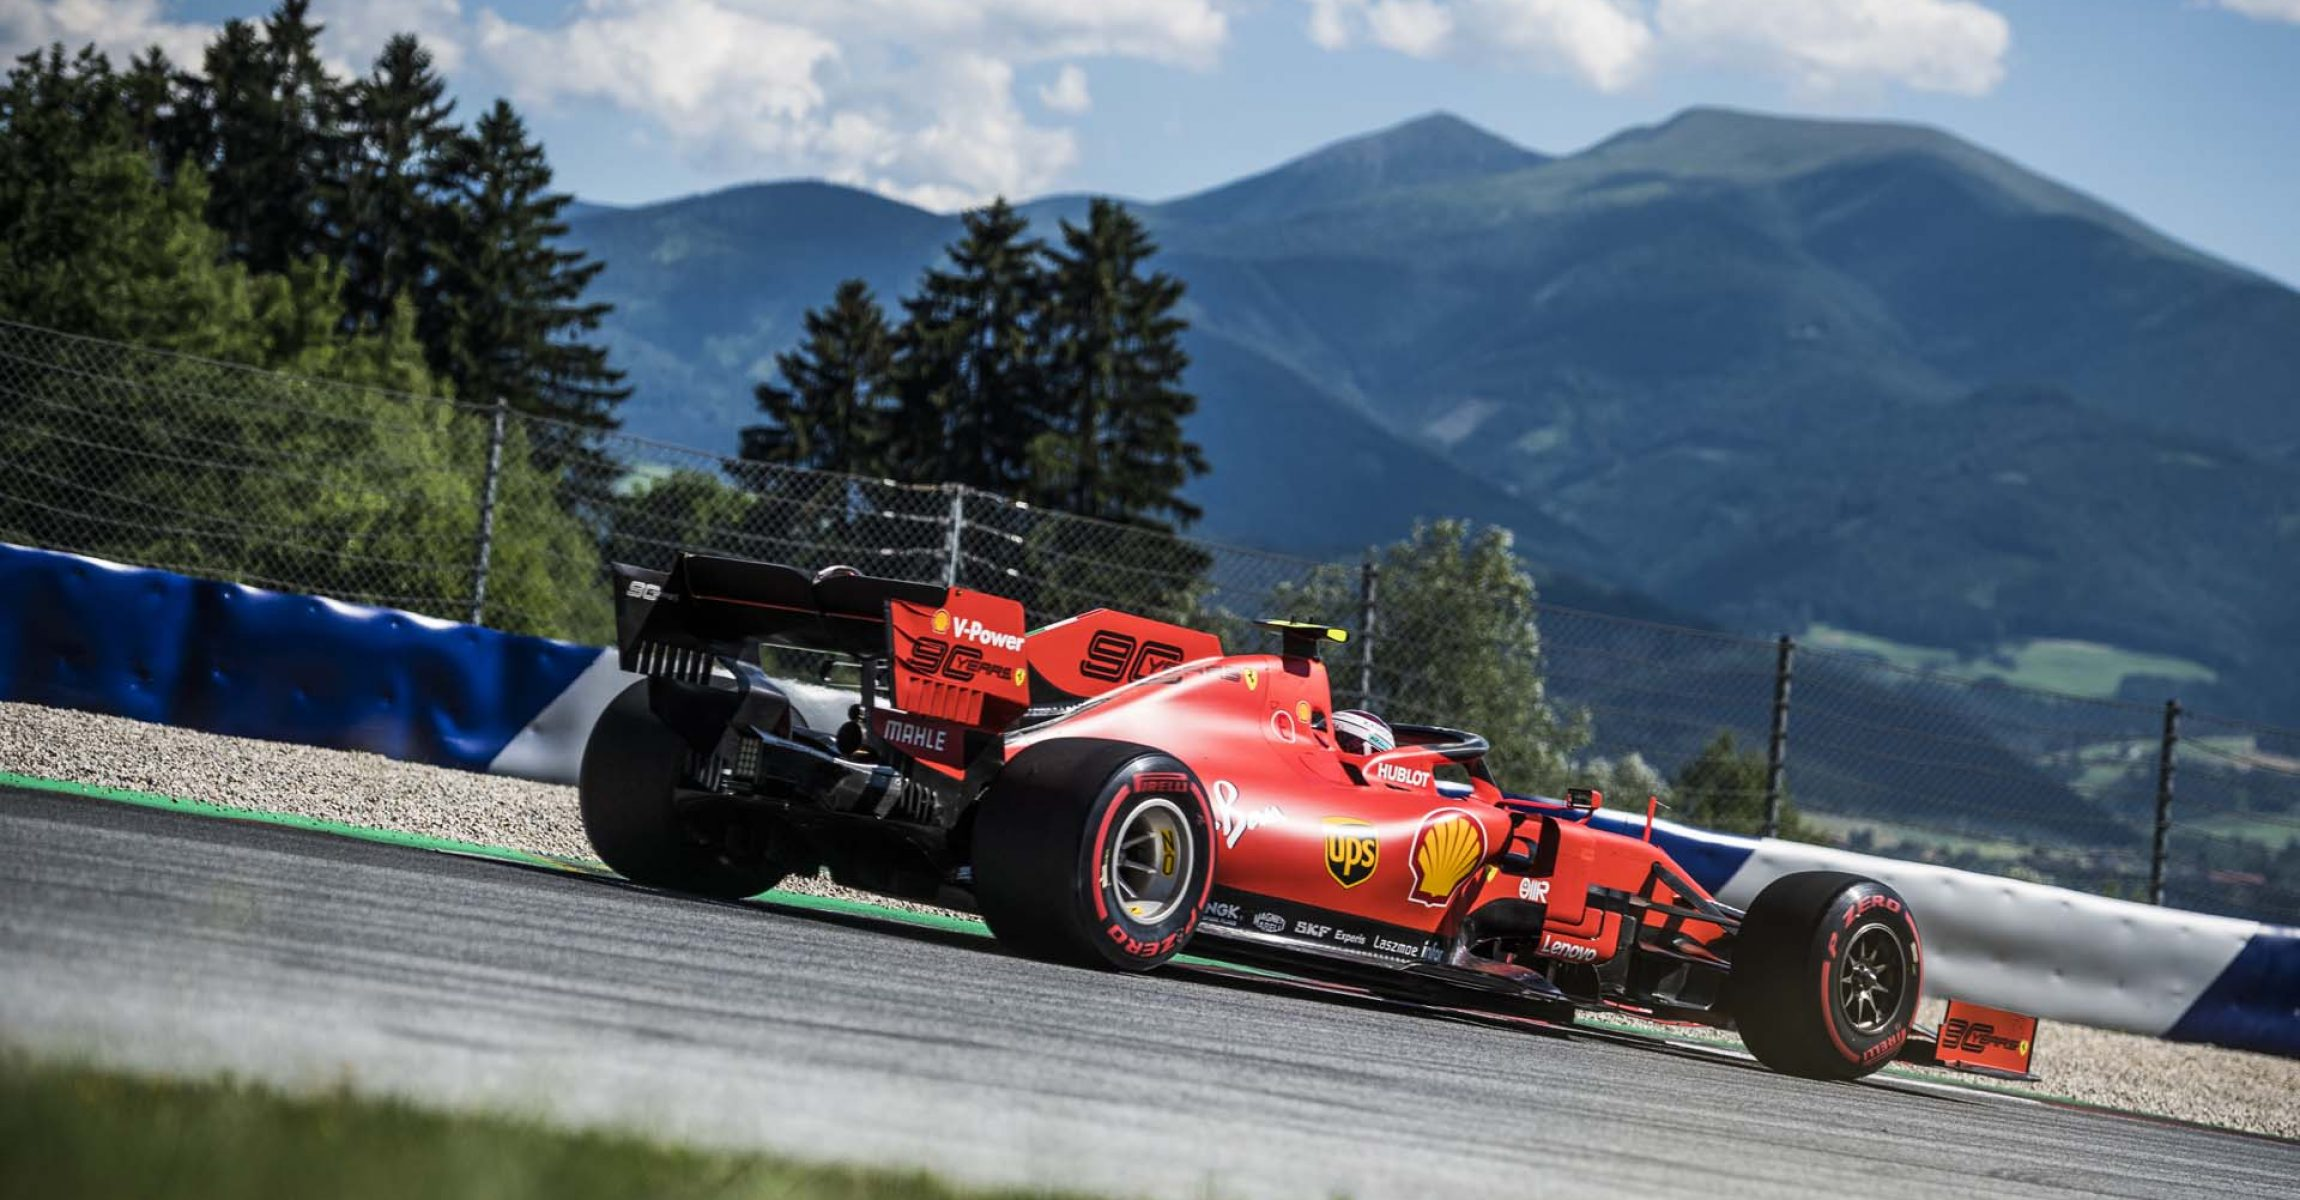 Charles Leclerc races at the FIA Formula One World Championship 2019 in Spielberg, Austria on June 28, 2019 // Philip Platzer/Red Bull Content Pool // AP-1ZSNR2JD91W11 // Usage for editorial use only // Please go to www.redbullcontentpool.com for further information. //